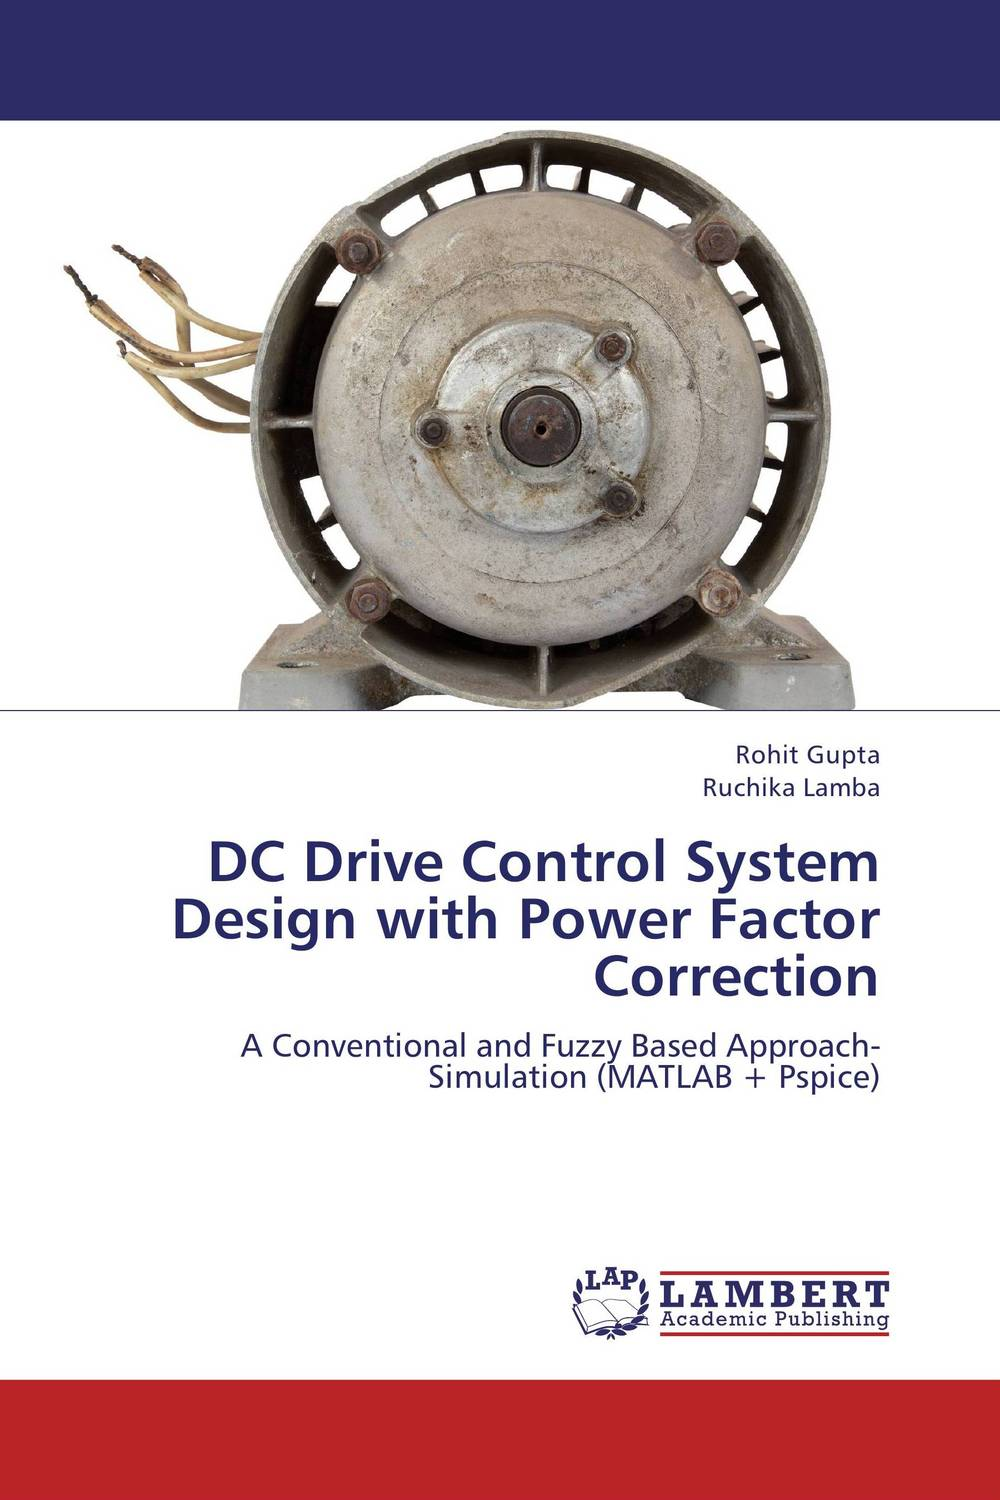 DC Drive Control System Design with Power Factor Correction design and evaluation of microemulsion gel system of nadifloxacin